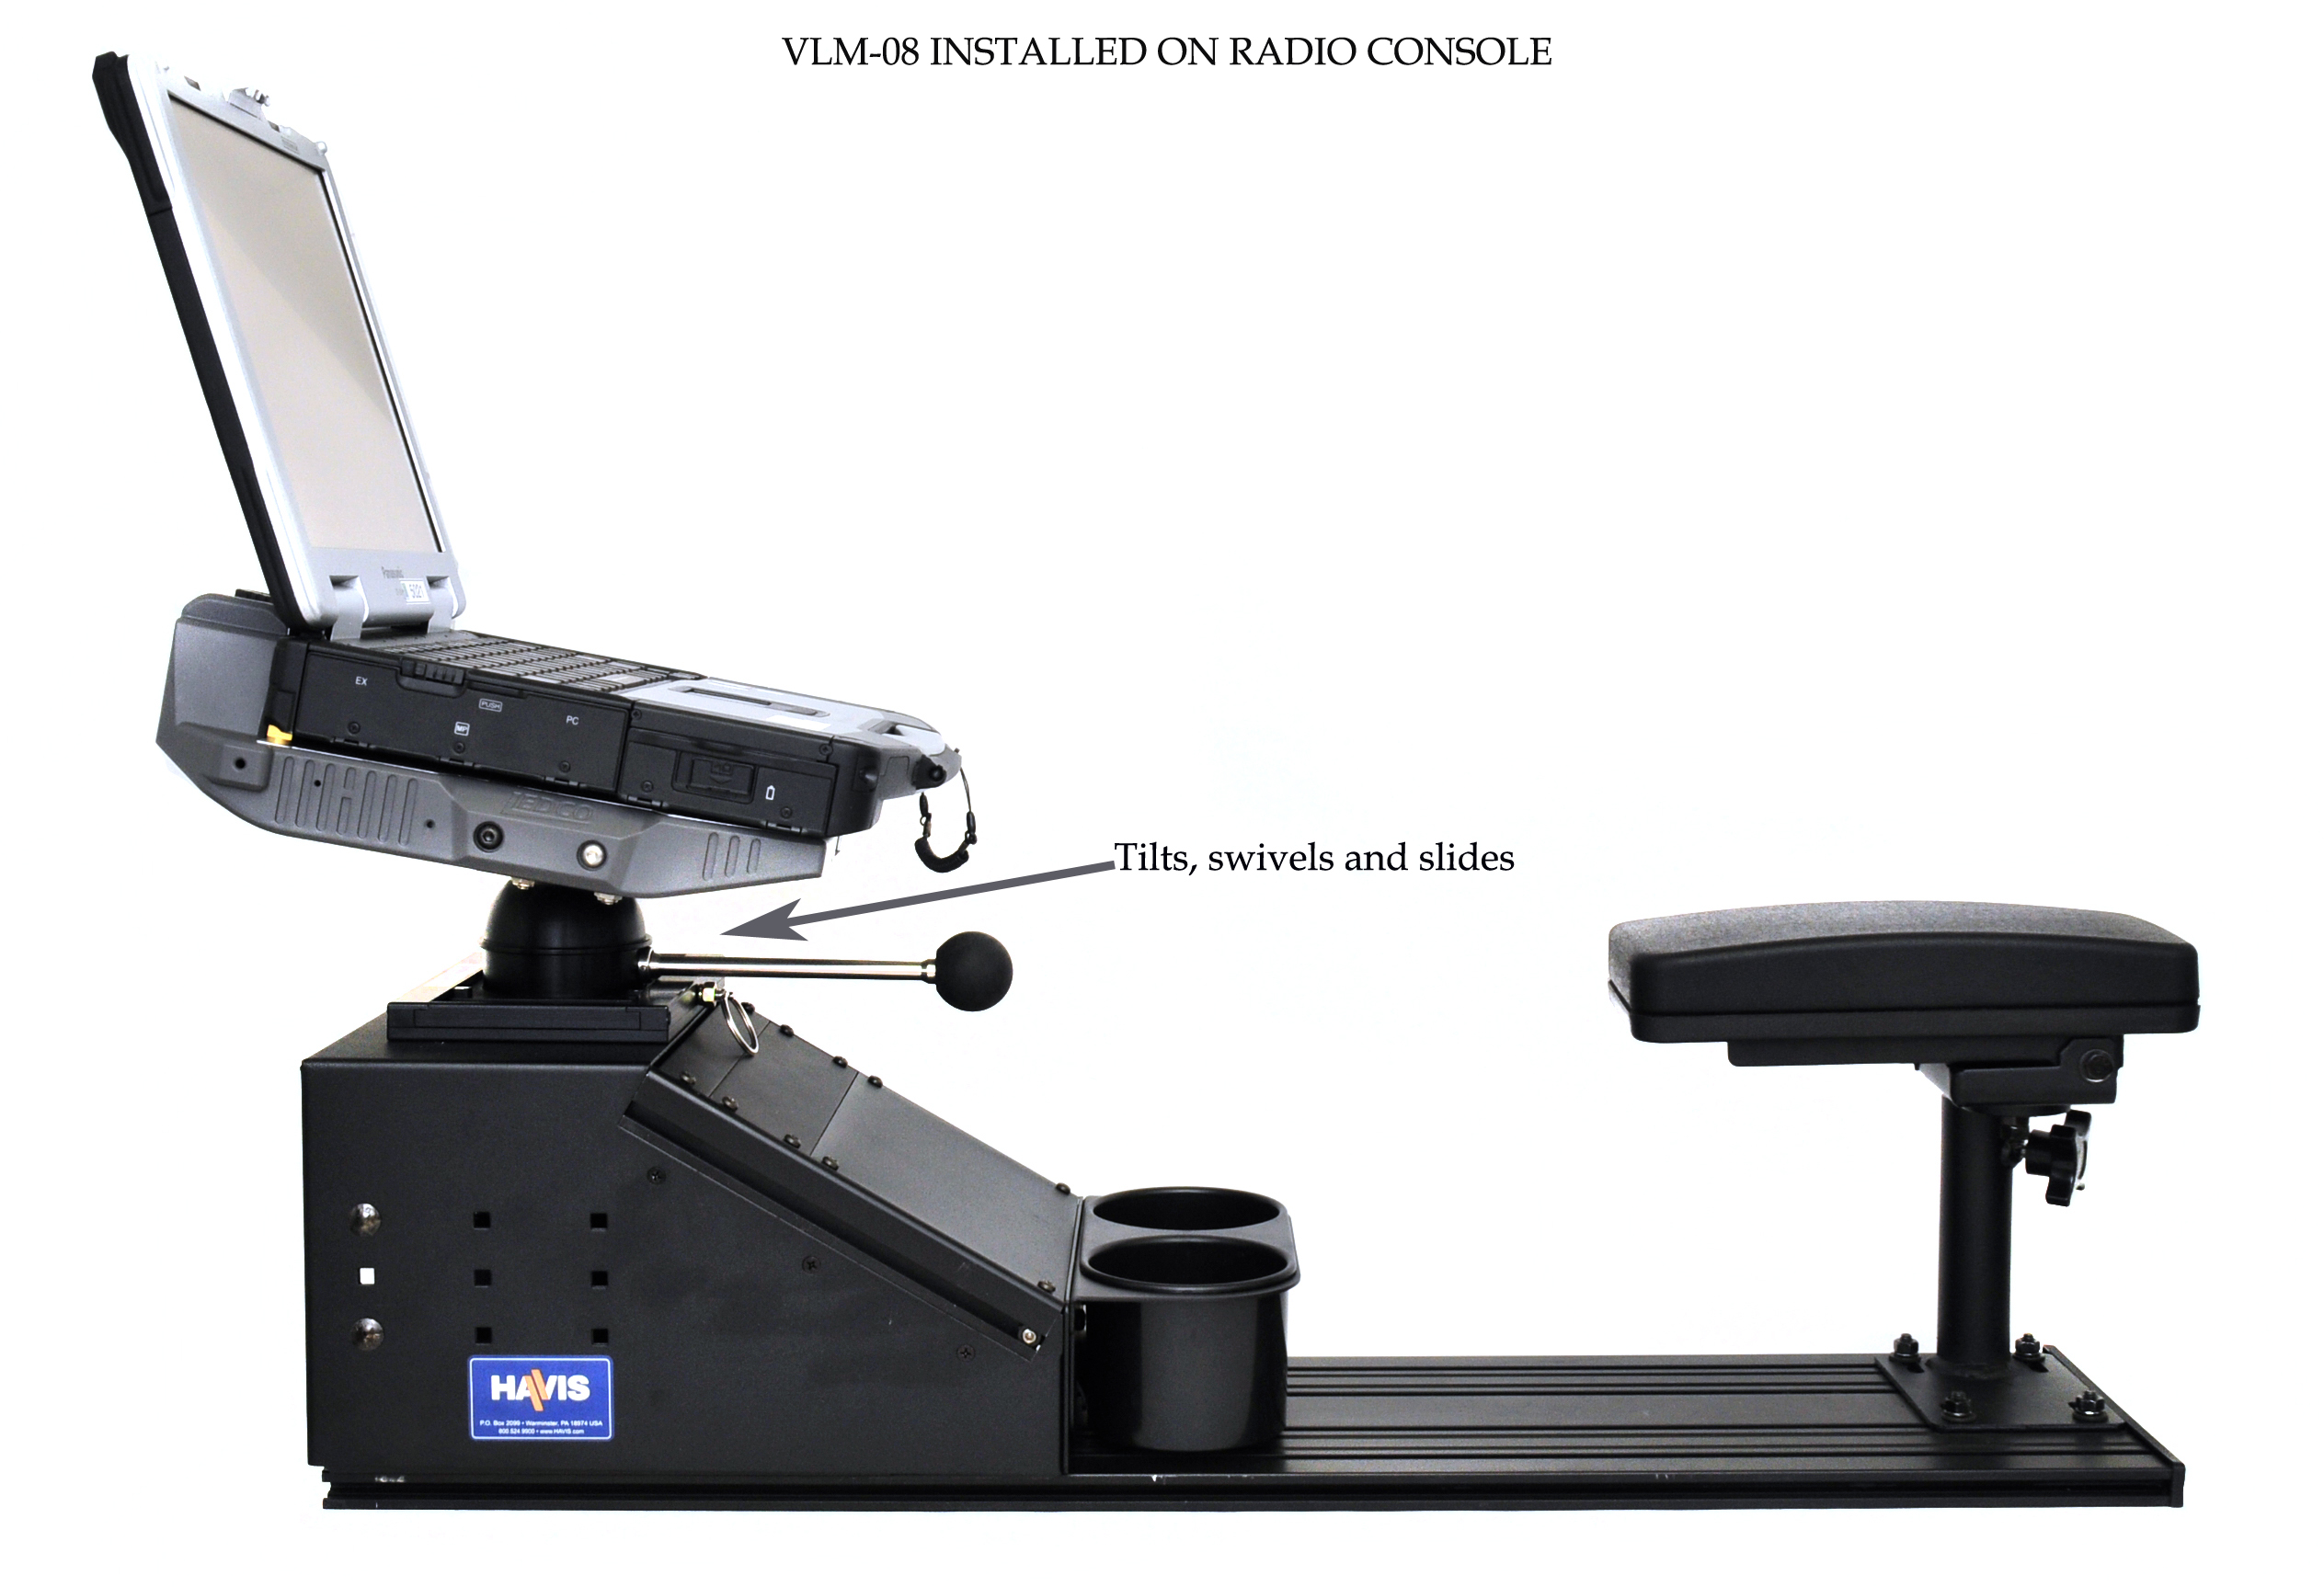 VLM-08 Vehicle Computer Mount in Police, installed on havis console - Rossbro - Québec, Canada